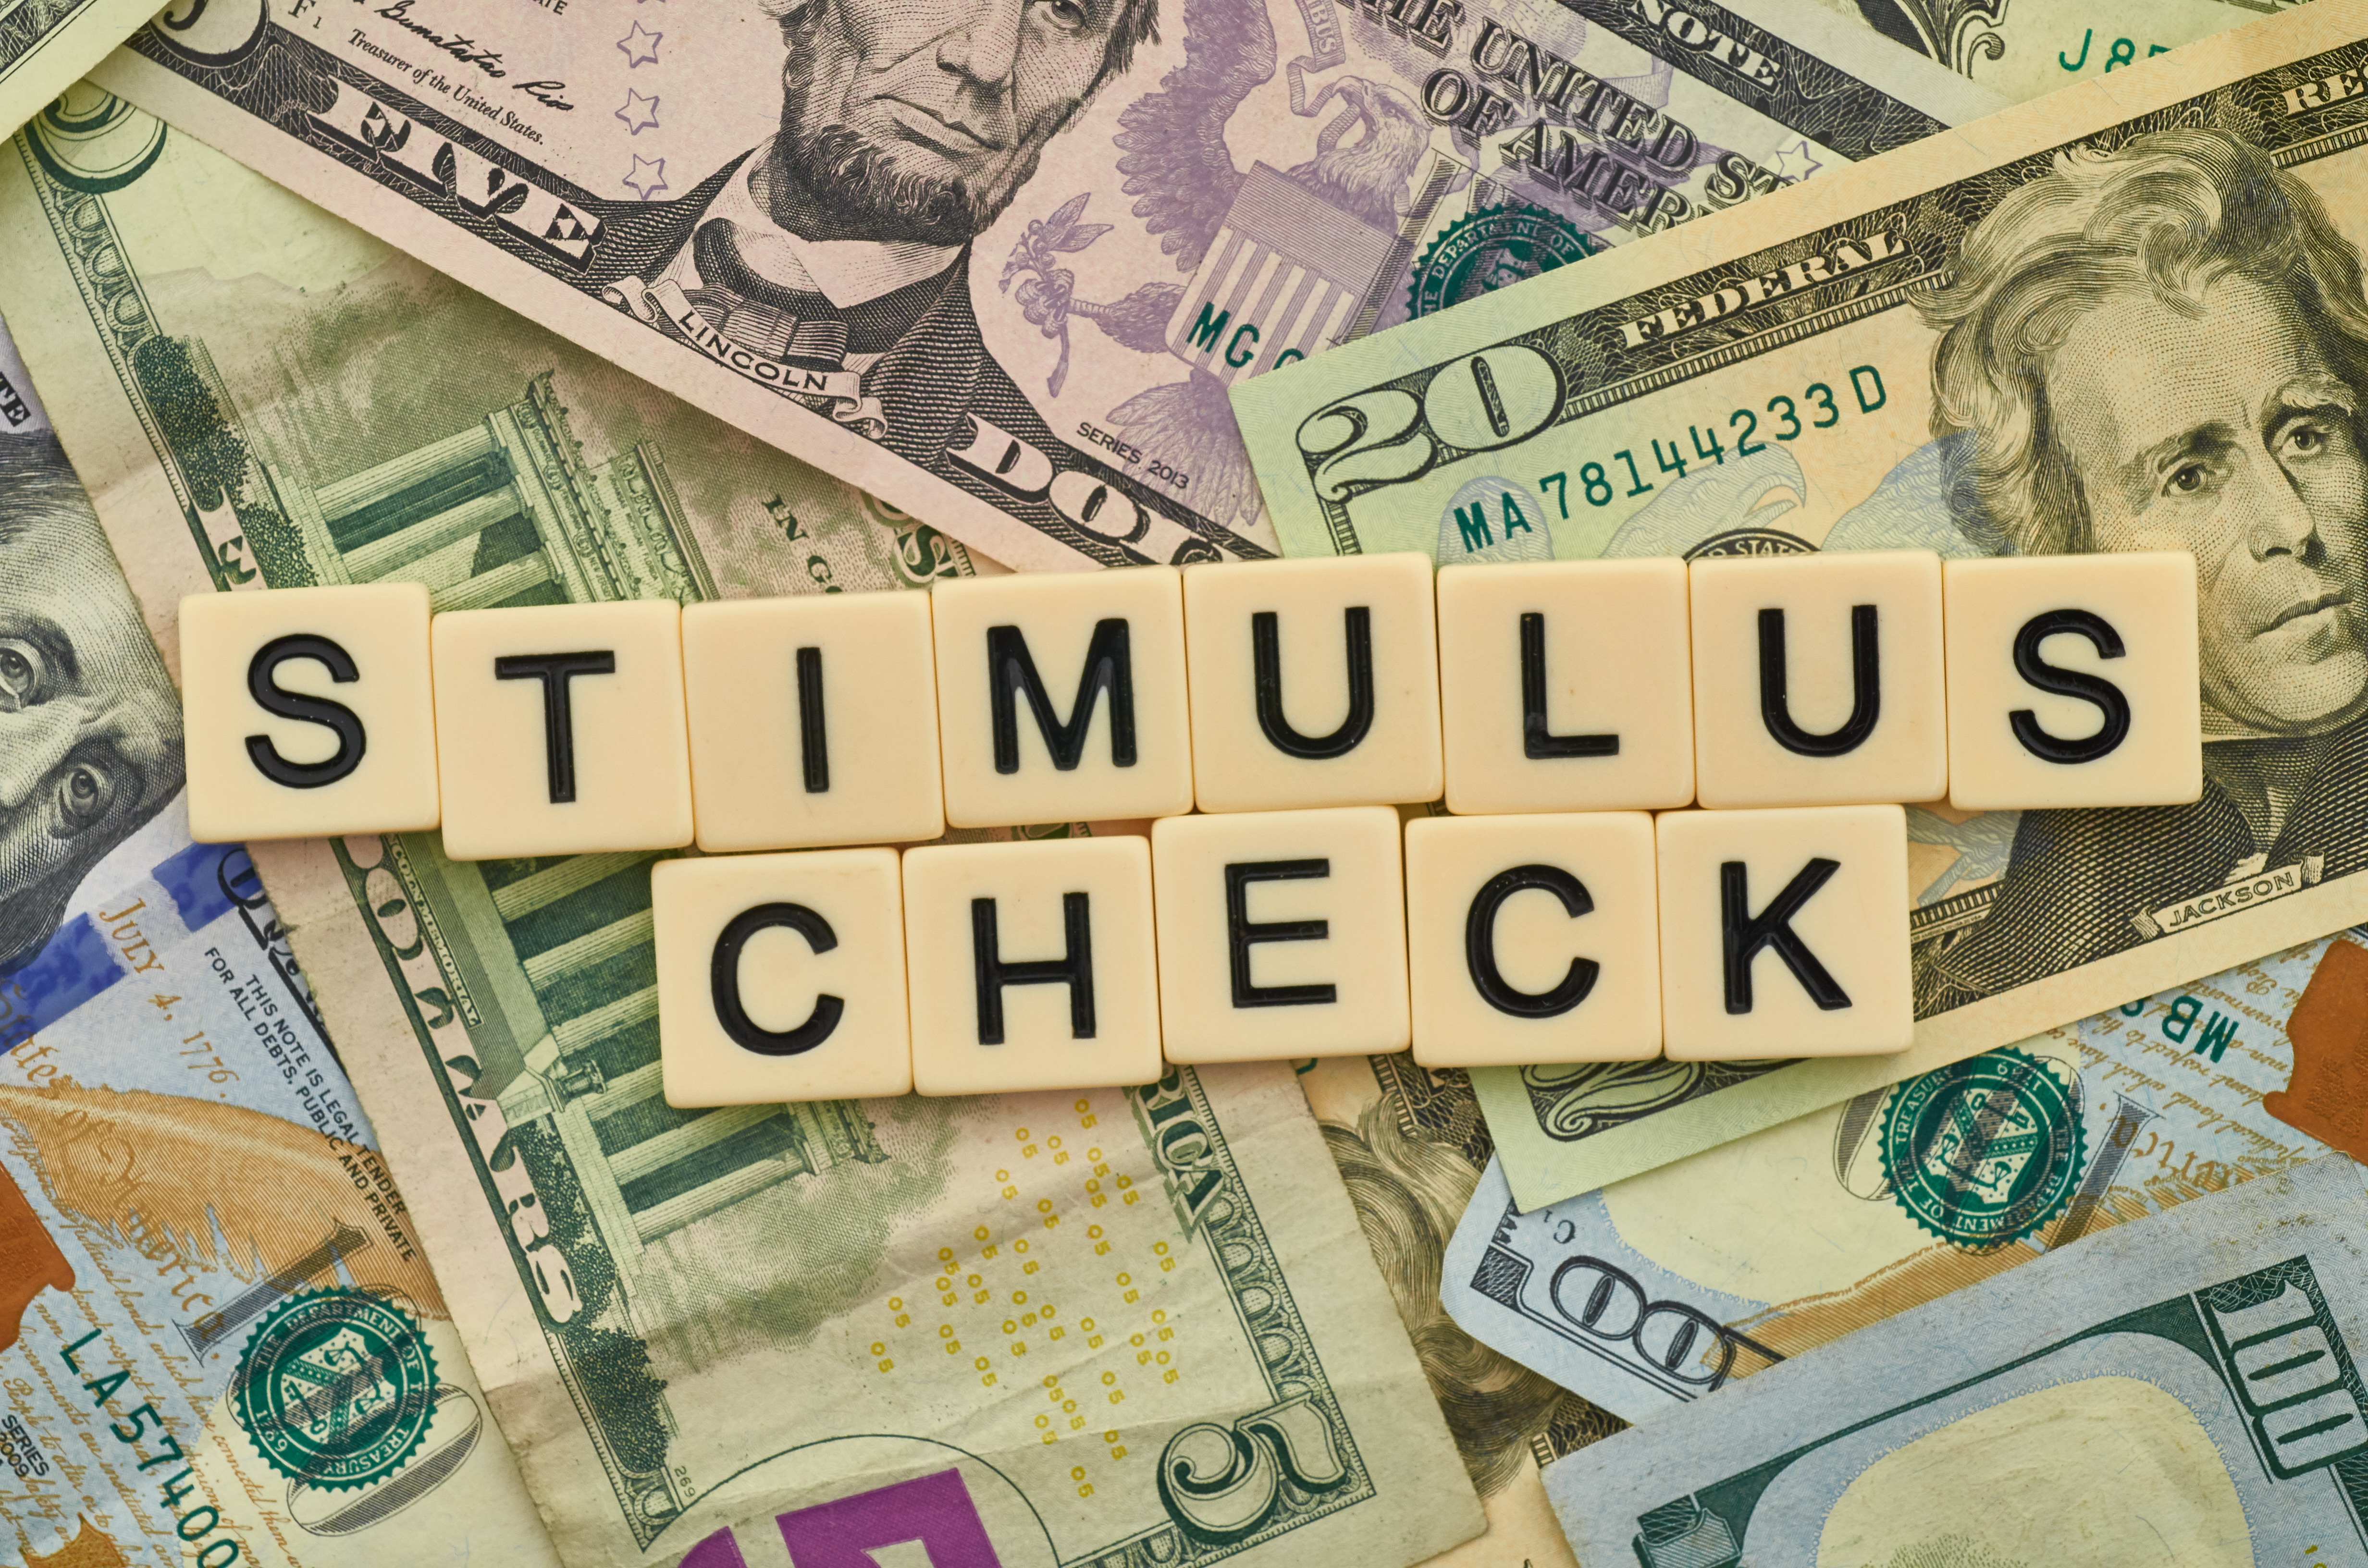 Stimulus Passes Along Party Lines Meaning Only Democrat Voters Will Receive Checks